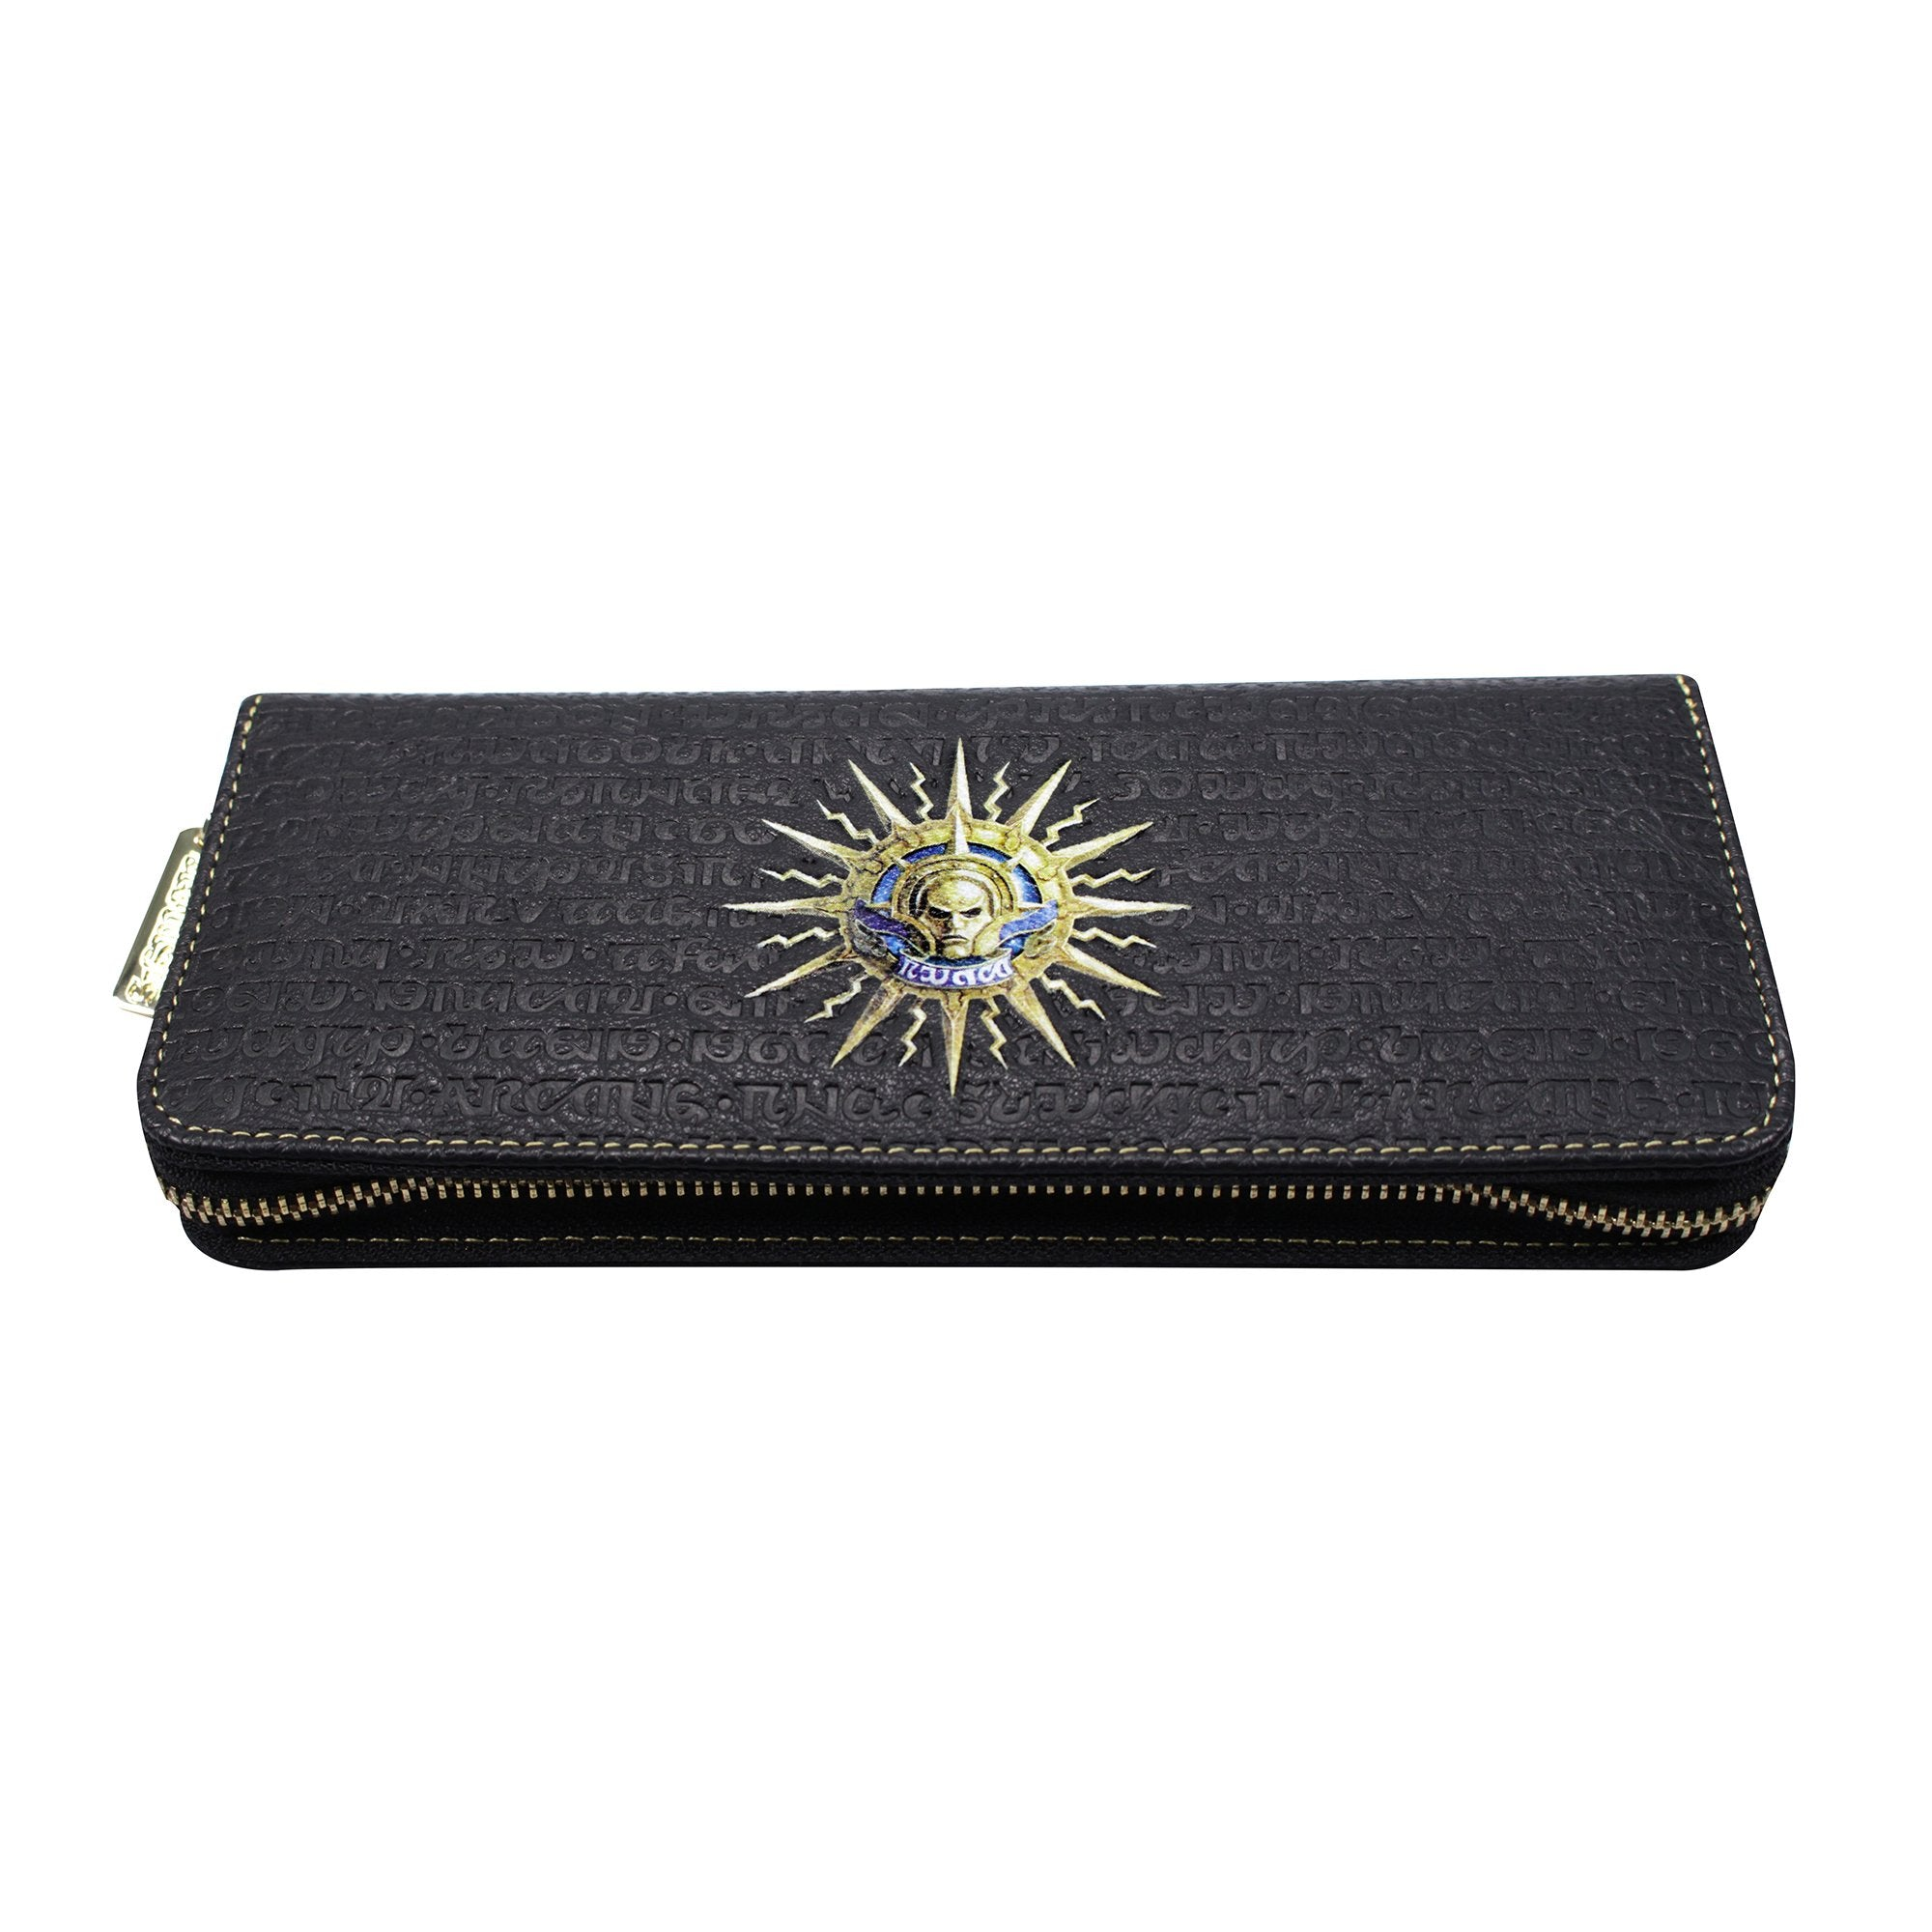 Warhammer Age of Sigmar Pencil Case - Stormcast Eternal - Half Moon Bay US